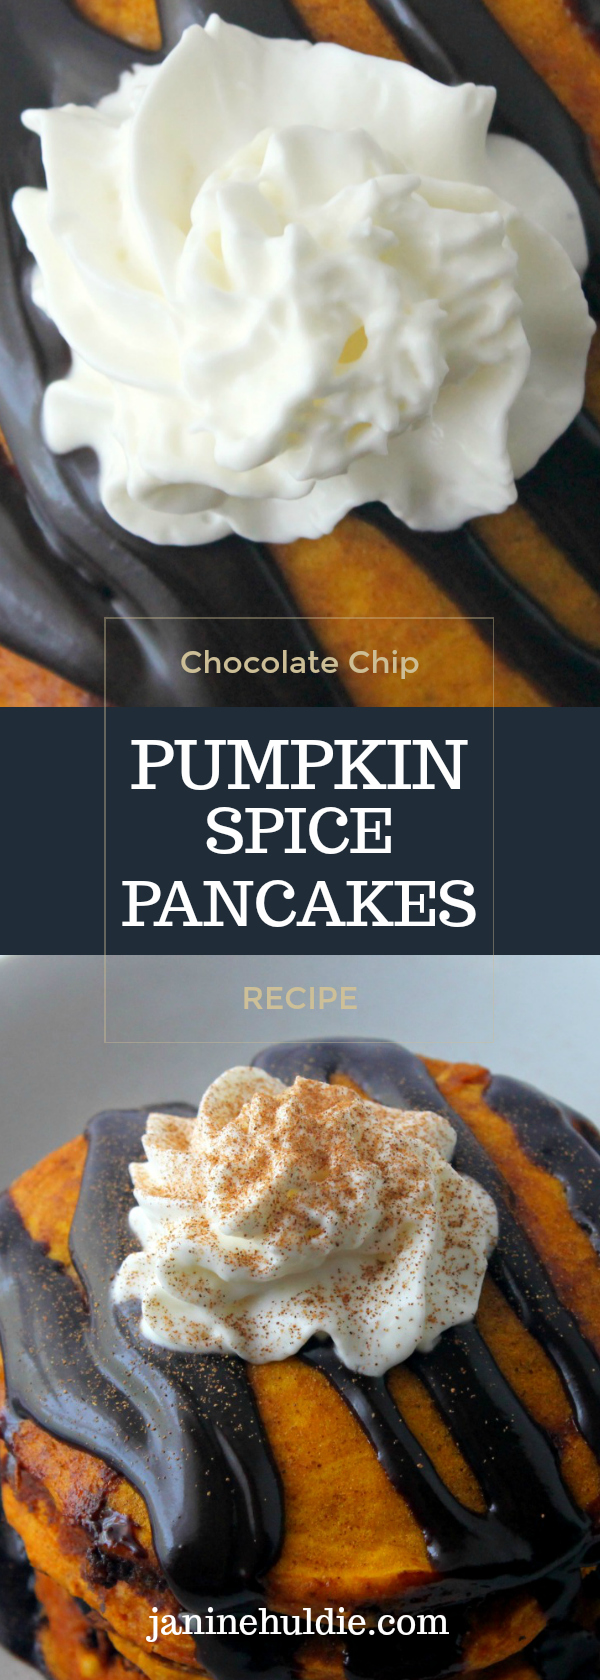 Chocolate Chip Pumpkin Spice Pancakes Long Pin